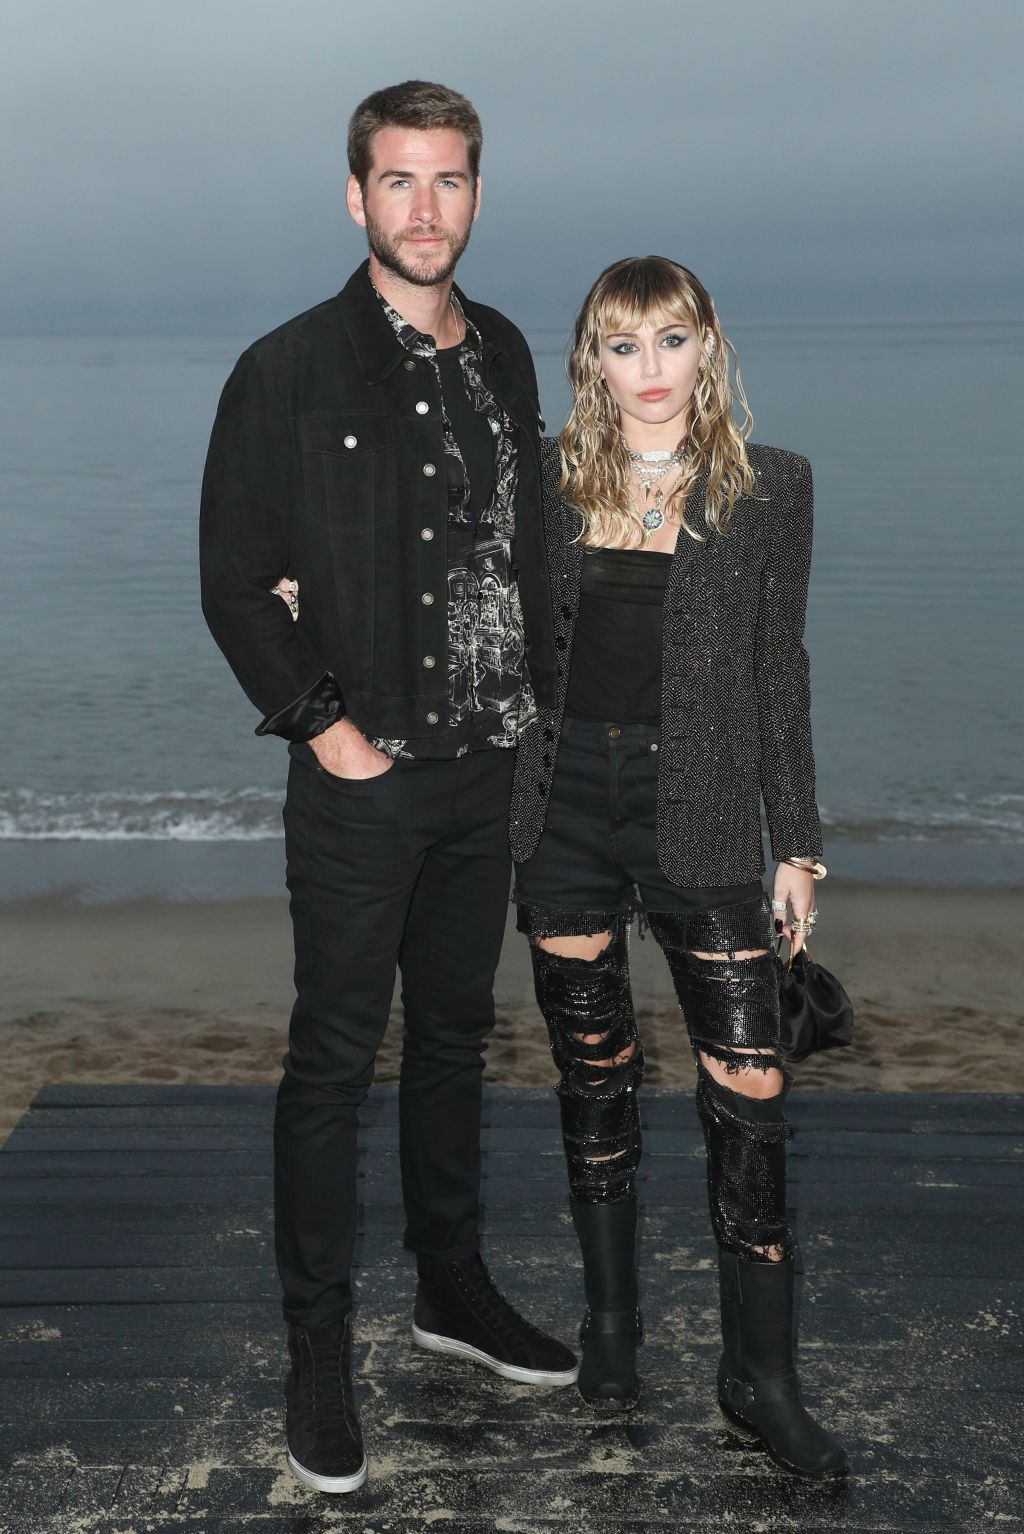 Miley Cyrus, husband Liam Hemsworth